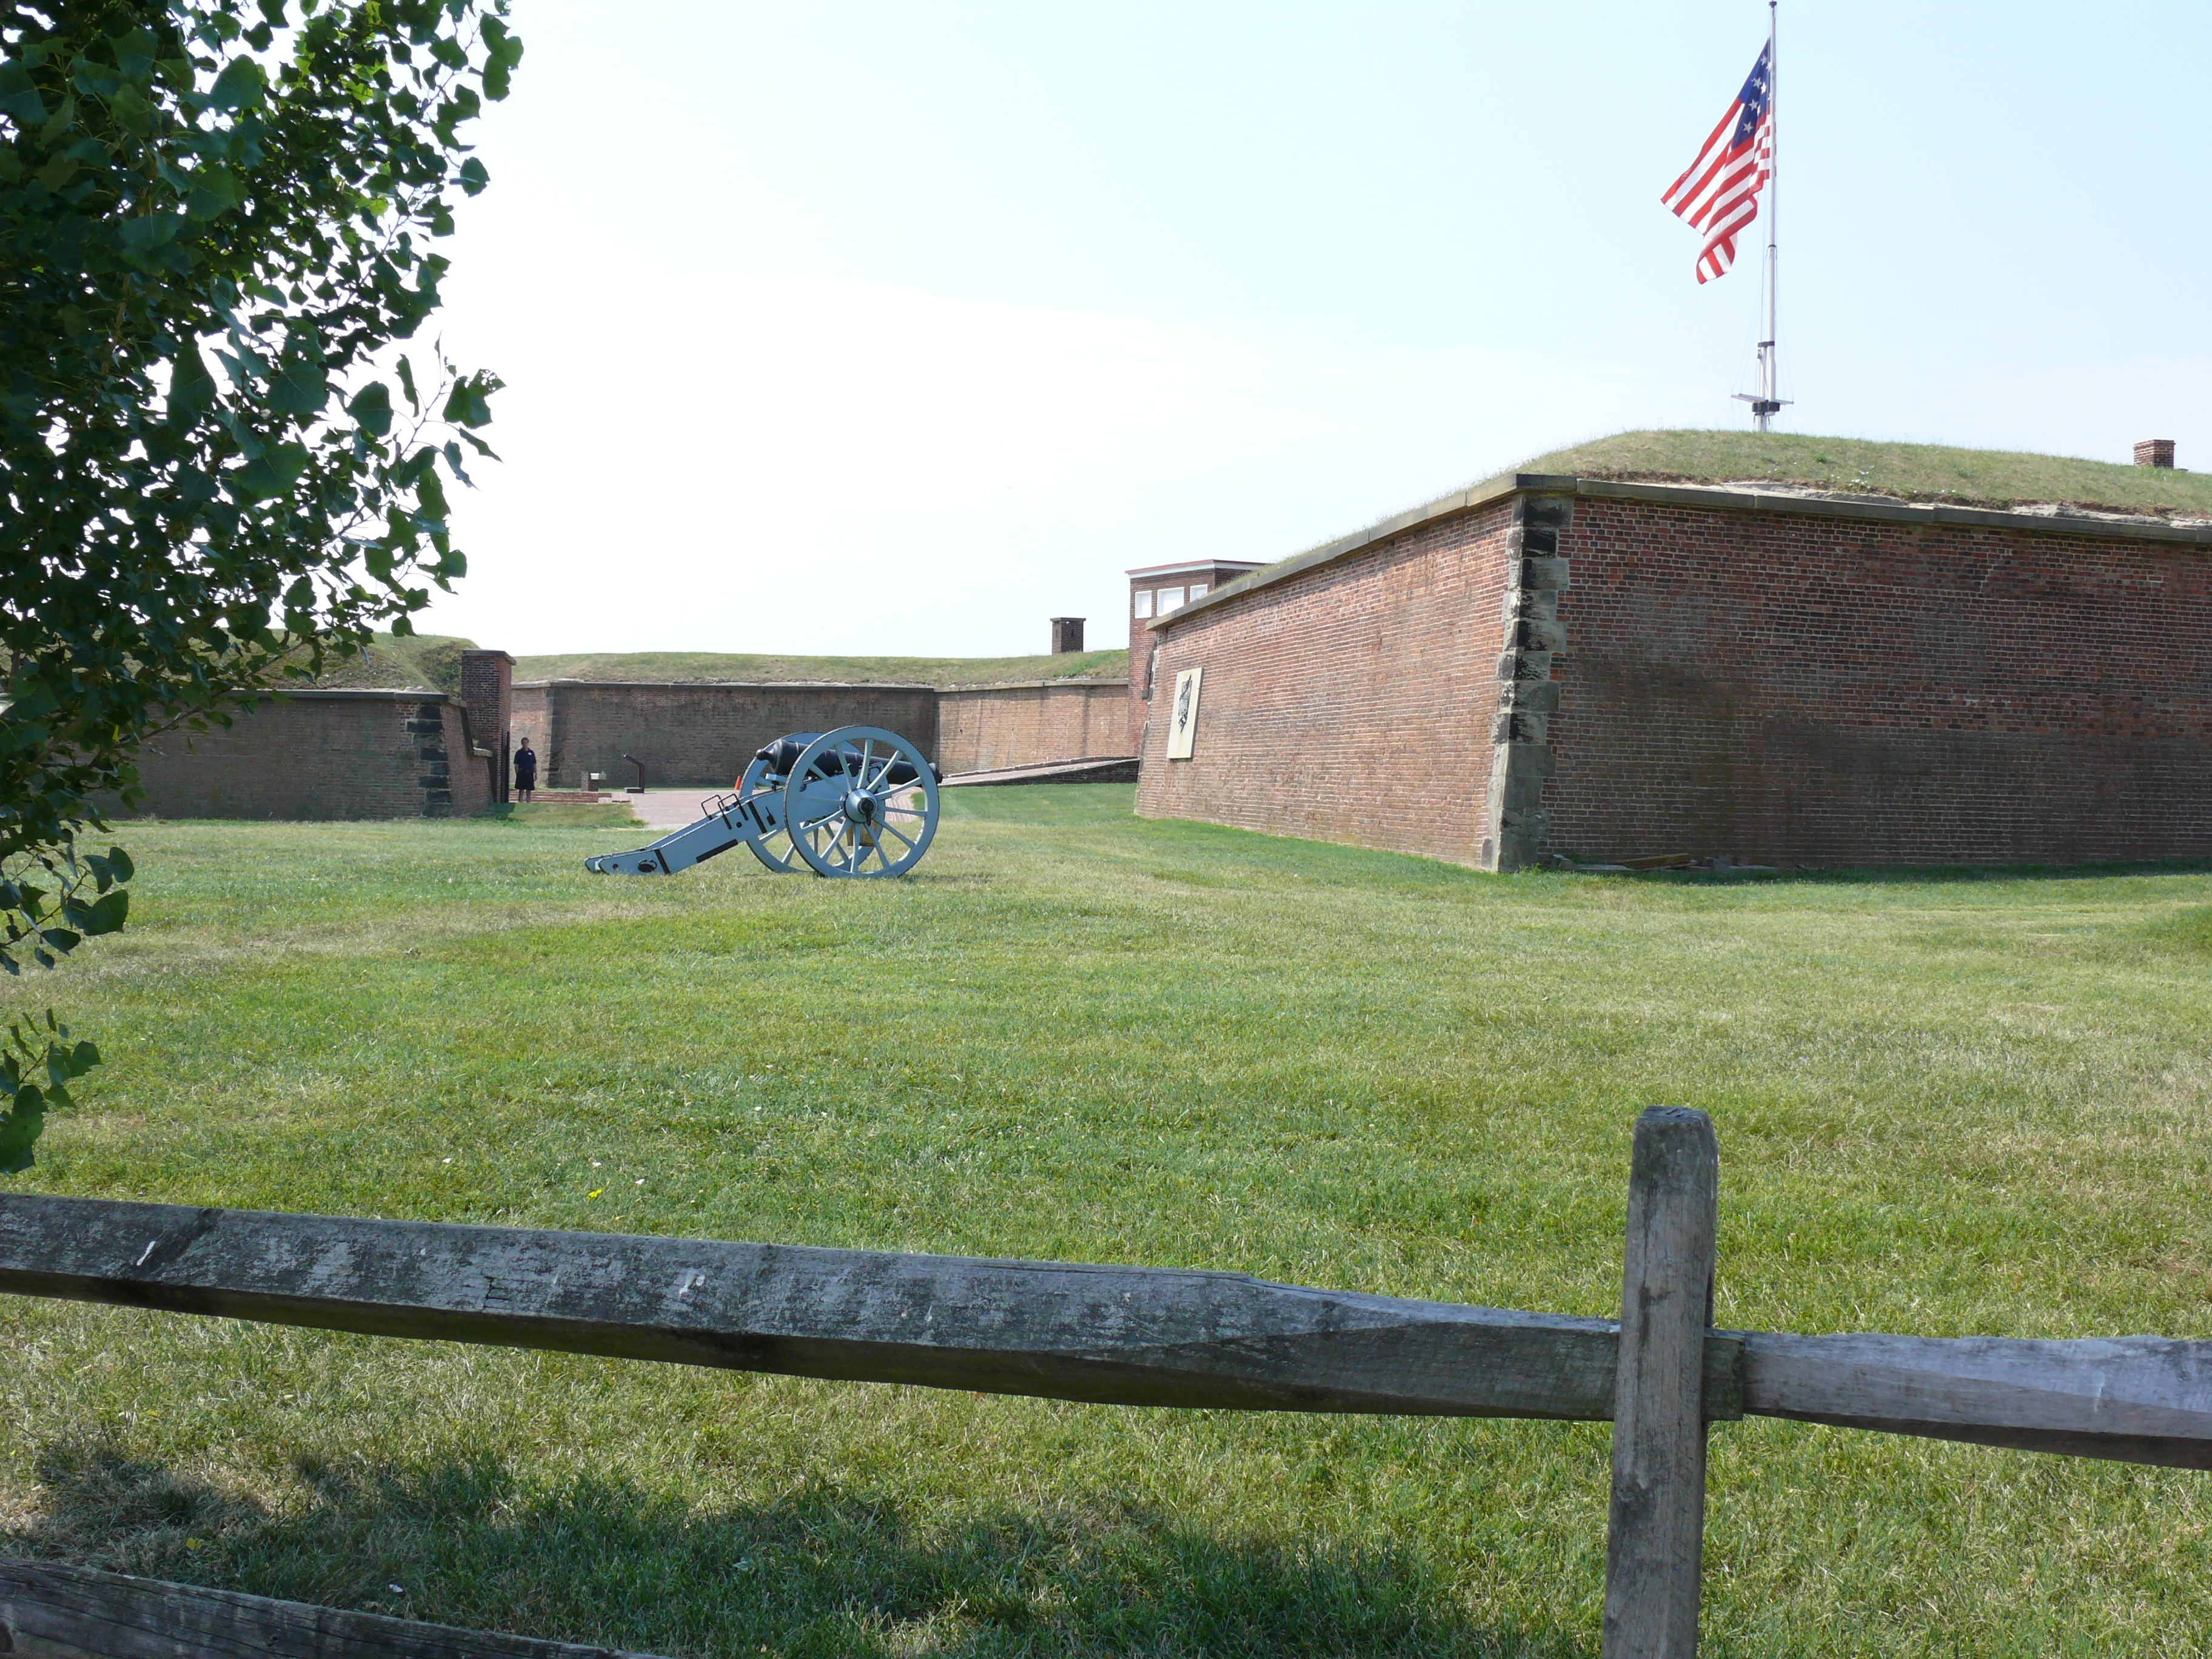 Fort_McHenry2